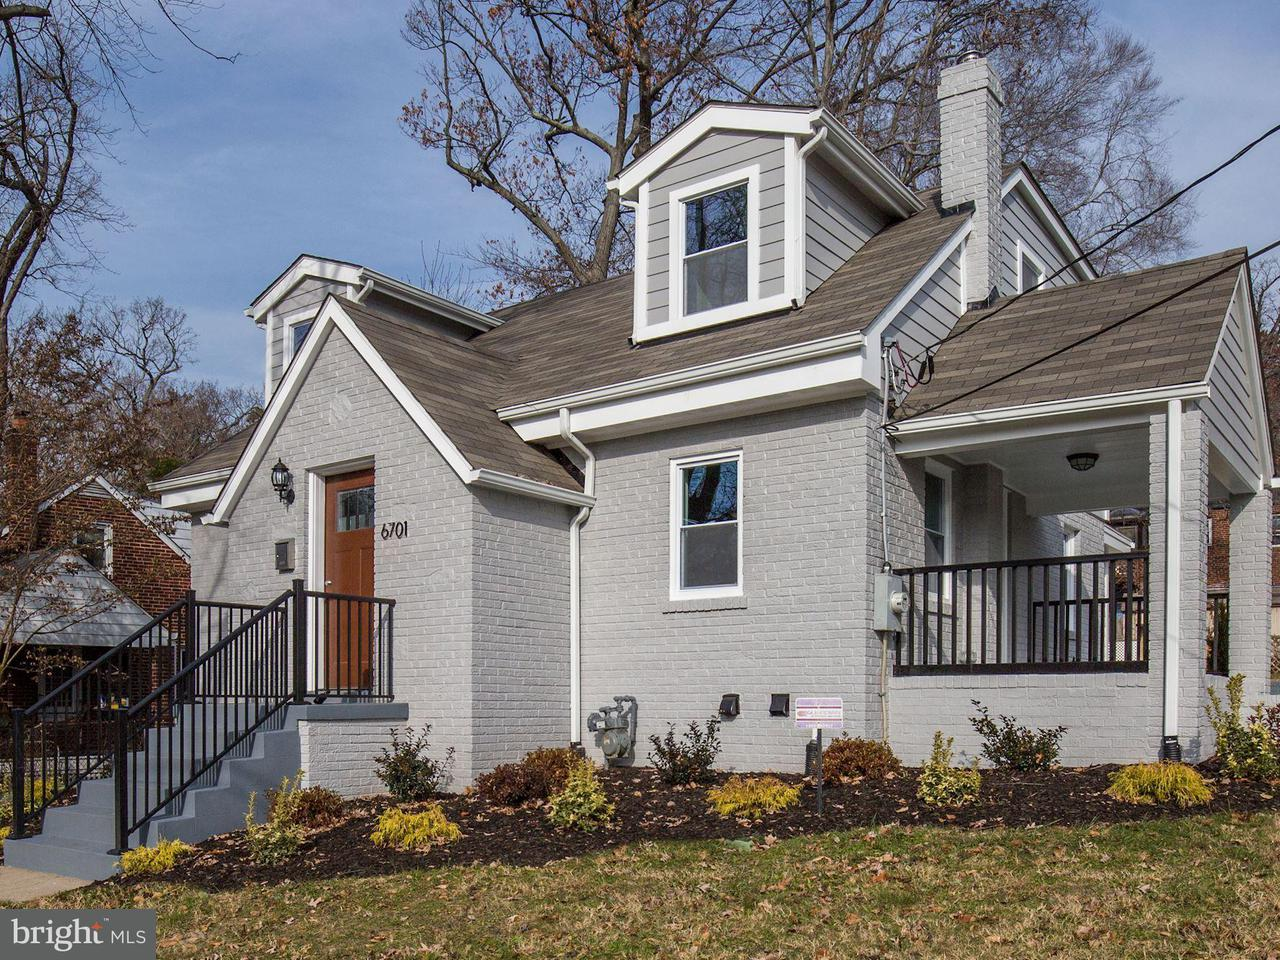 Single Family Home for Sale at 6701 PRINCE GEORGES Avenue 6701 PRINCE GEORGES Avenue Takoma Park, Maryland 20912 United States